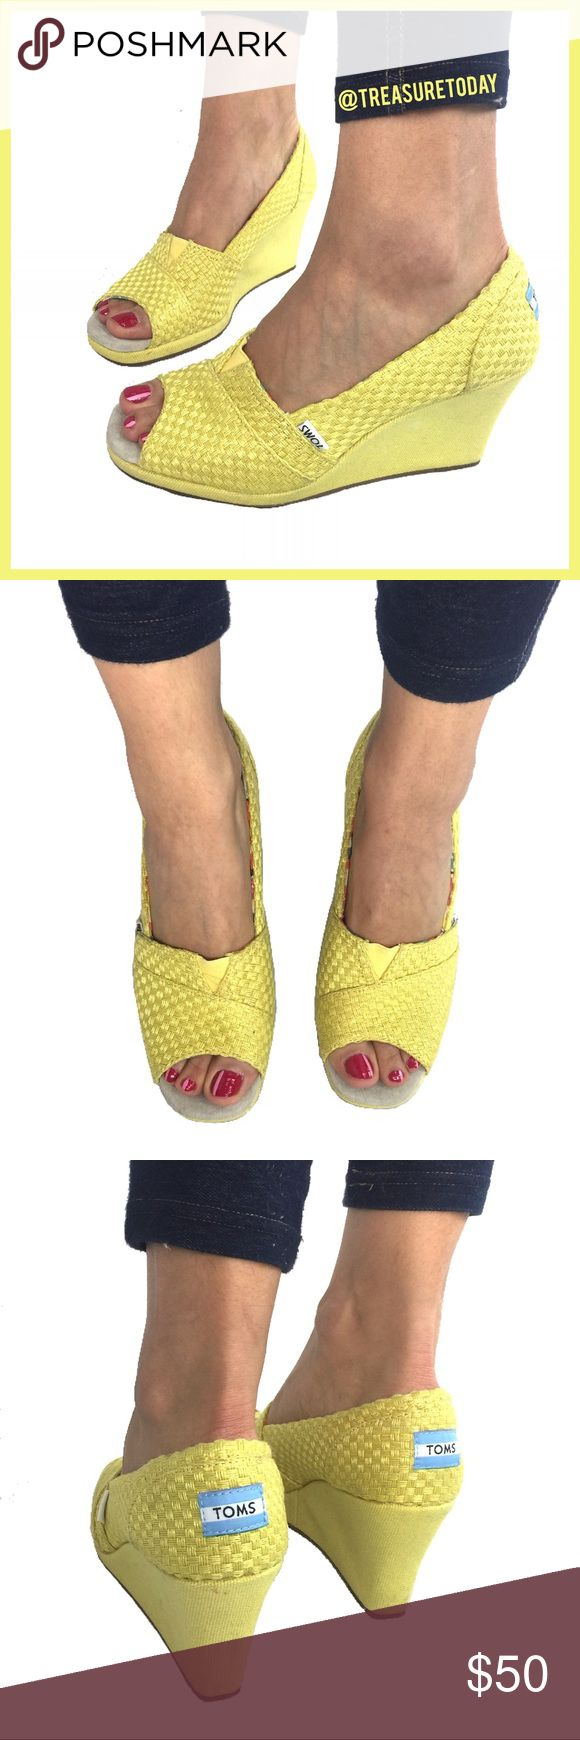 TOMS Adoarble Yellow Peep Toe Wedge Espadrilles Love these! Great for the coming sprint and summer. Gently worn a few times, minor wear (see pictures). Fits size 8 or 8.5! No box. Bundle 2 or more items to get discount 💛 TOMS Shoes Wedges